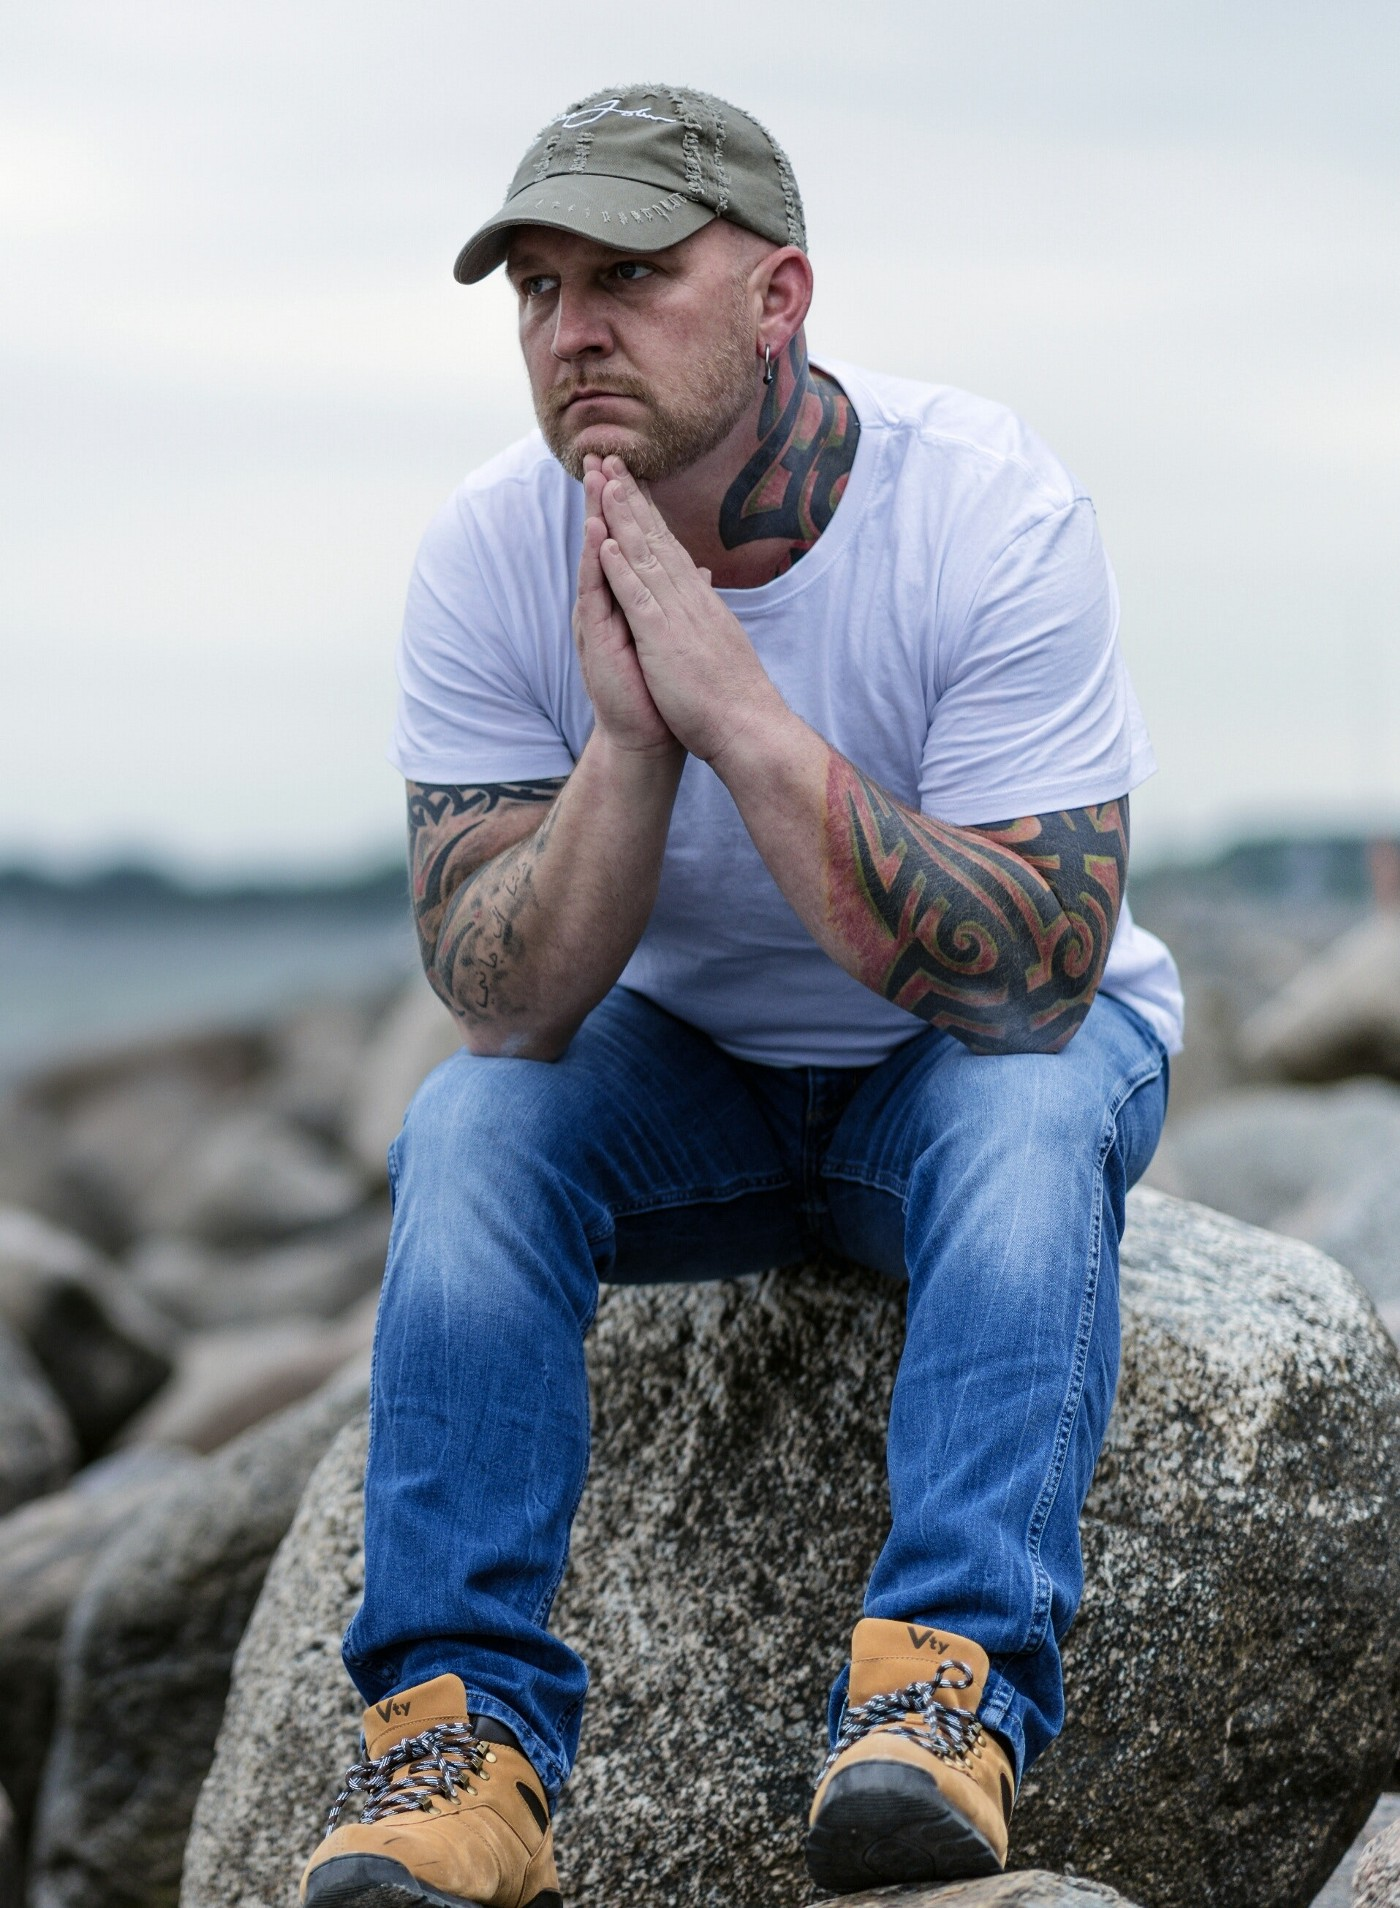 Man sitting outside on a rock looking lost in thought and a bit sad. Pensive. He is wearing a white t-shirt and jeans, with a green ballcap. His arms are tattooed. He has workboots on. The background is blurred but looks like a beach's rocky shore.